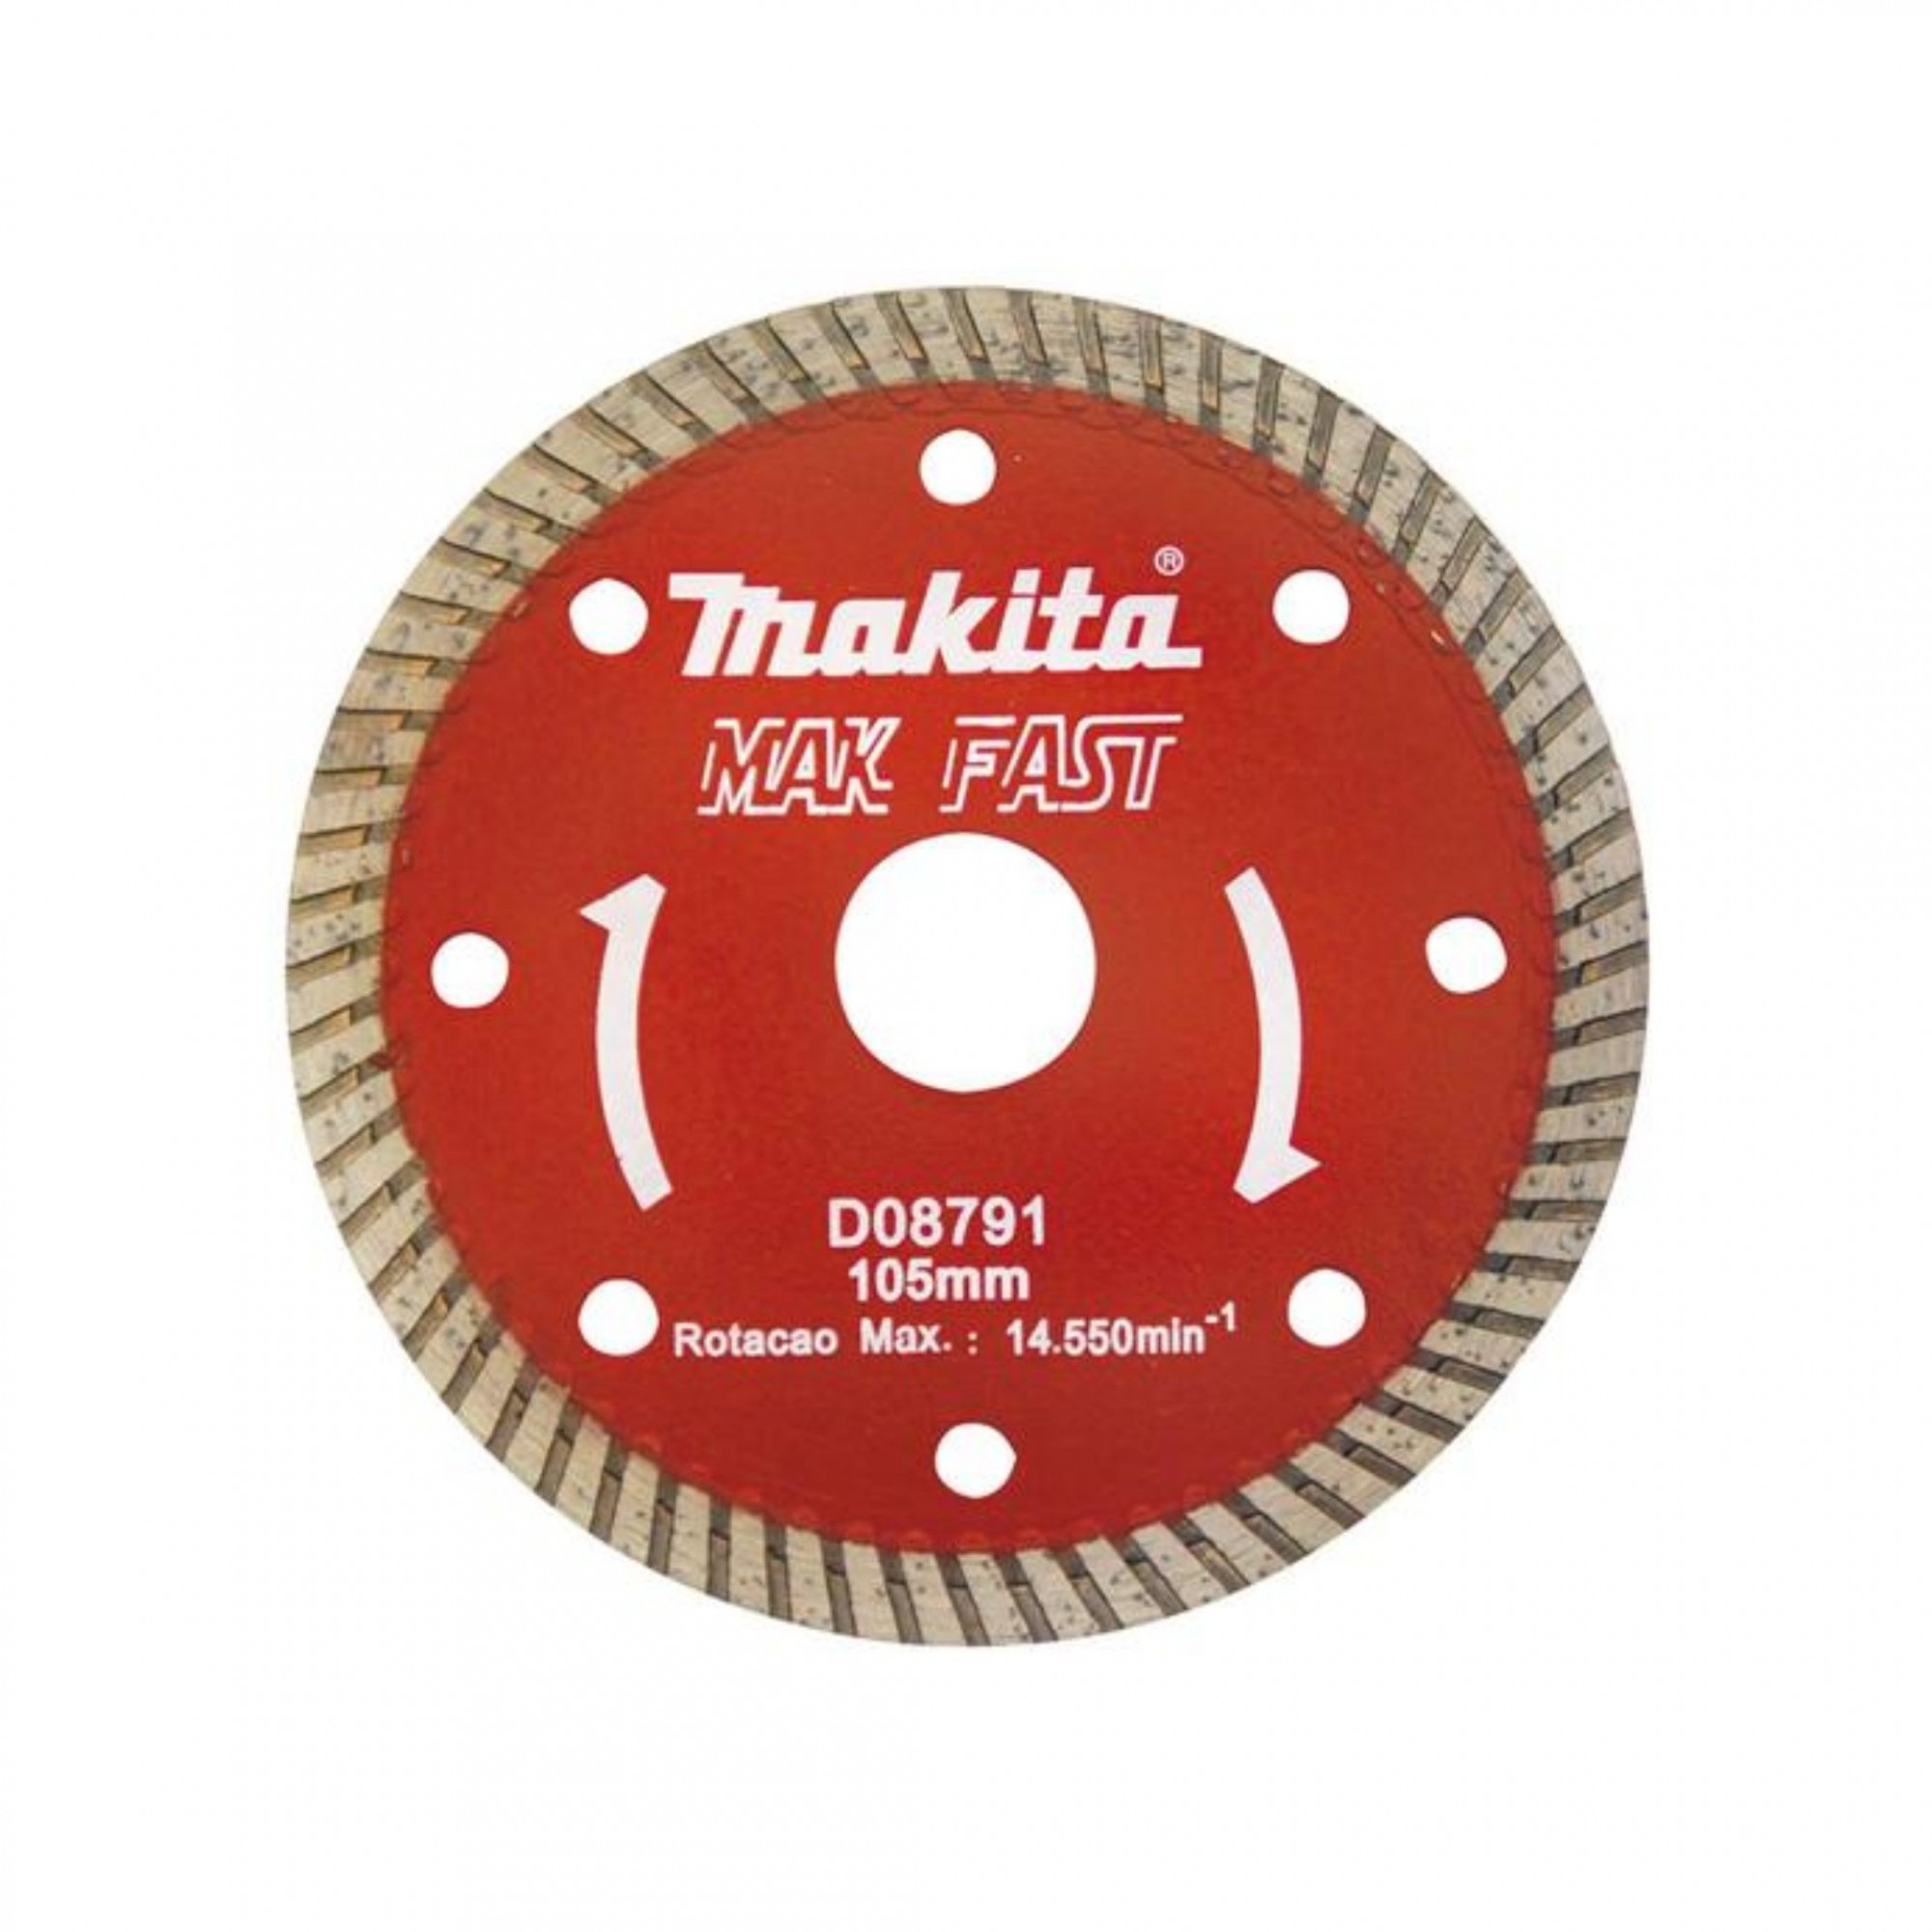 Disco Diamantado Mak Fast 105mm D08781 Makita